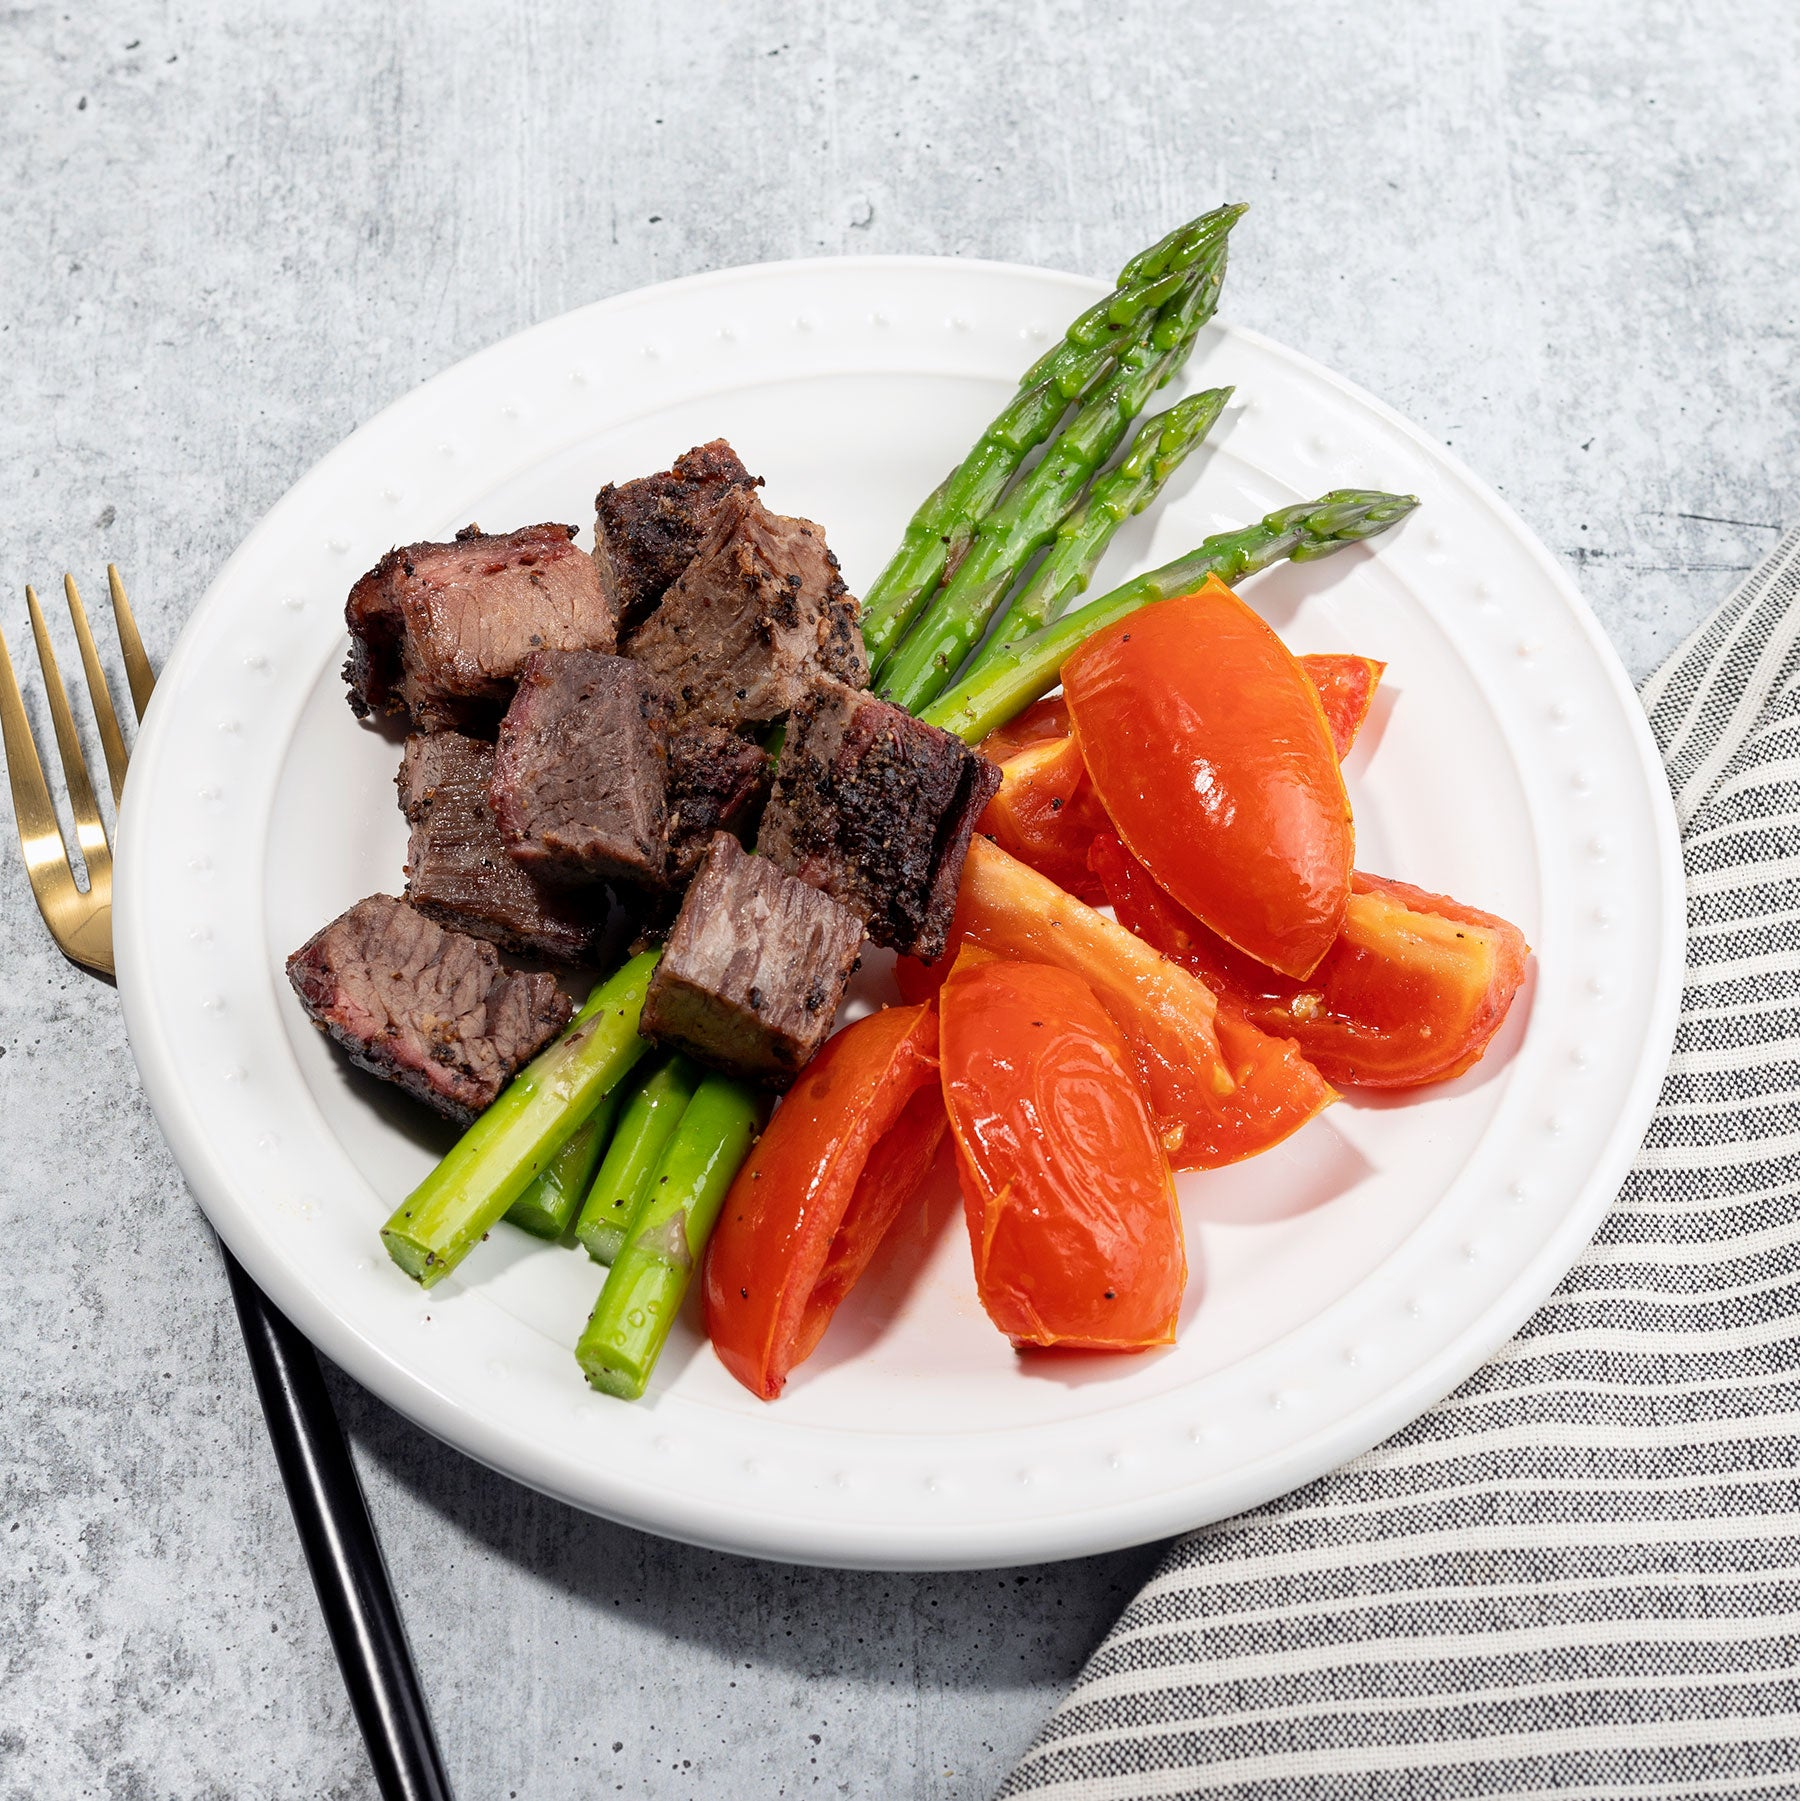 Peppercorn Crusted Brisket with Roasted Tomatoes and Asparagus